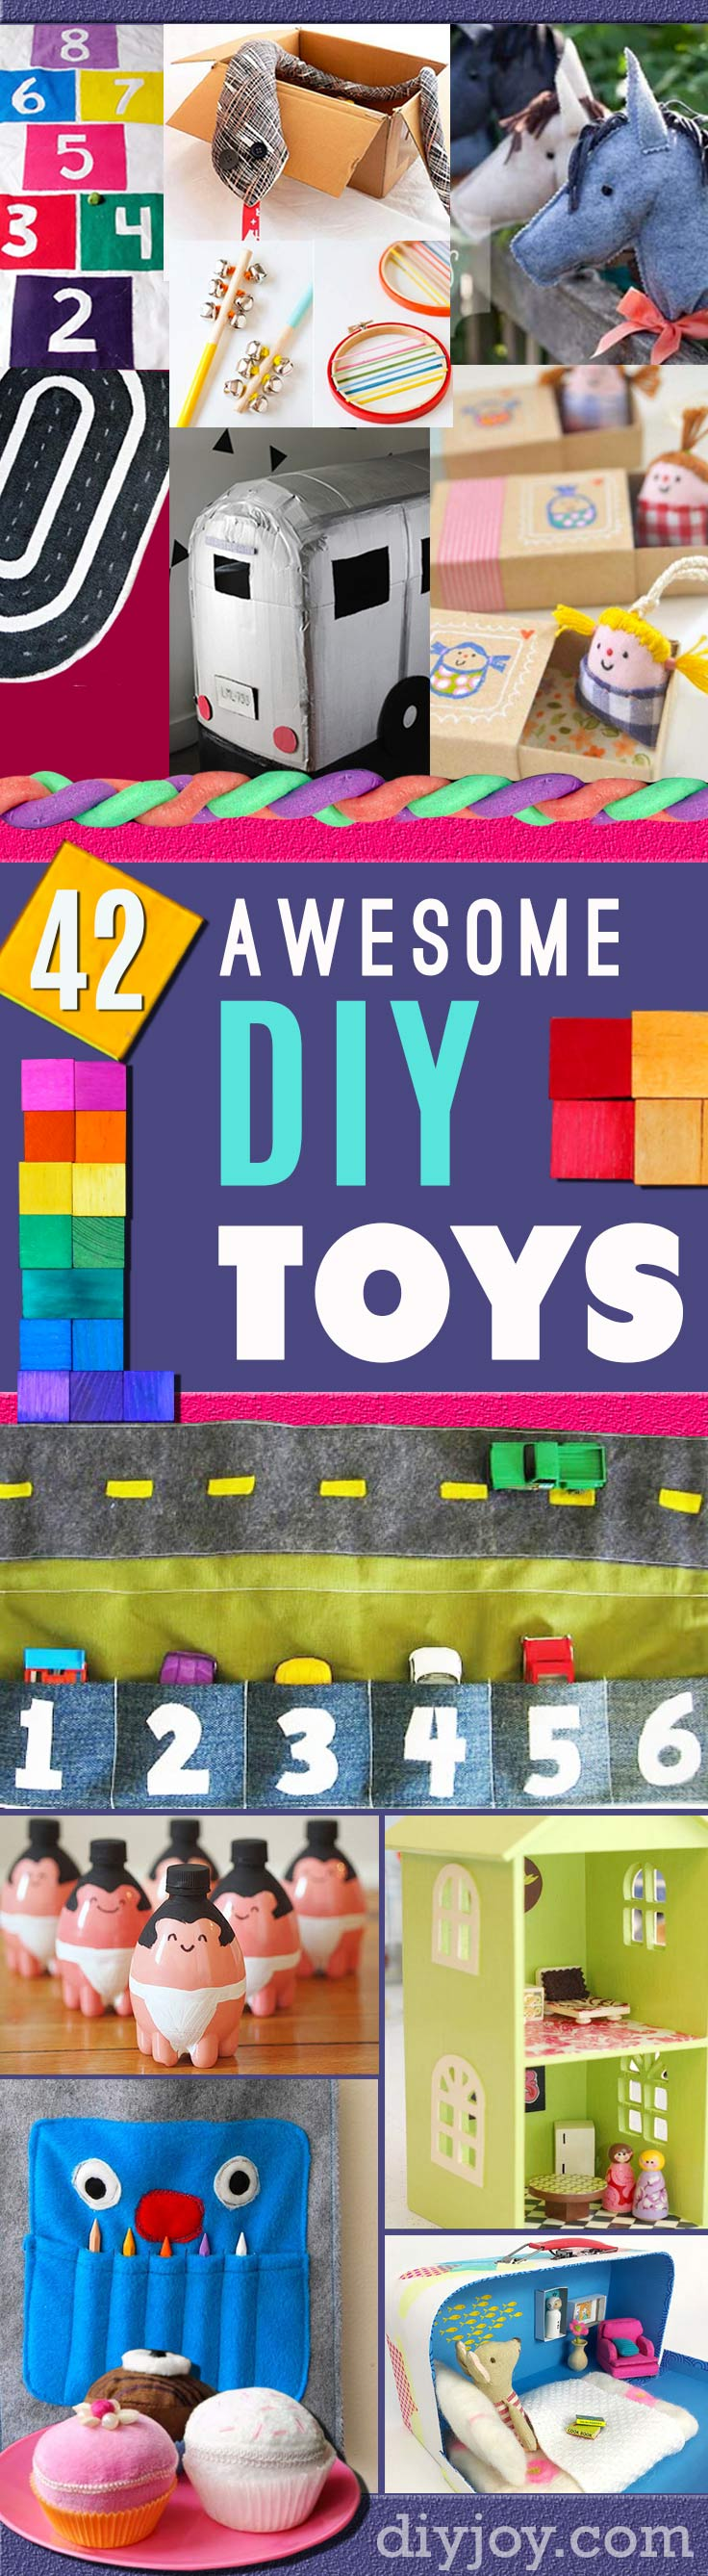 DIY Christmas Gifts for Kids - Homemade Christmas Presents for Children and Christmas Crafts for Kids   Toys, Dress Up Clothes, Dolls and Fun Games   Step by Step tutorials and instructions for cool gifts to make for boys and girls